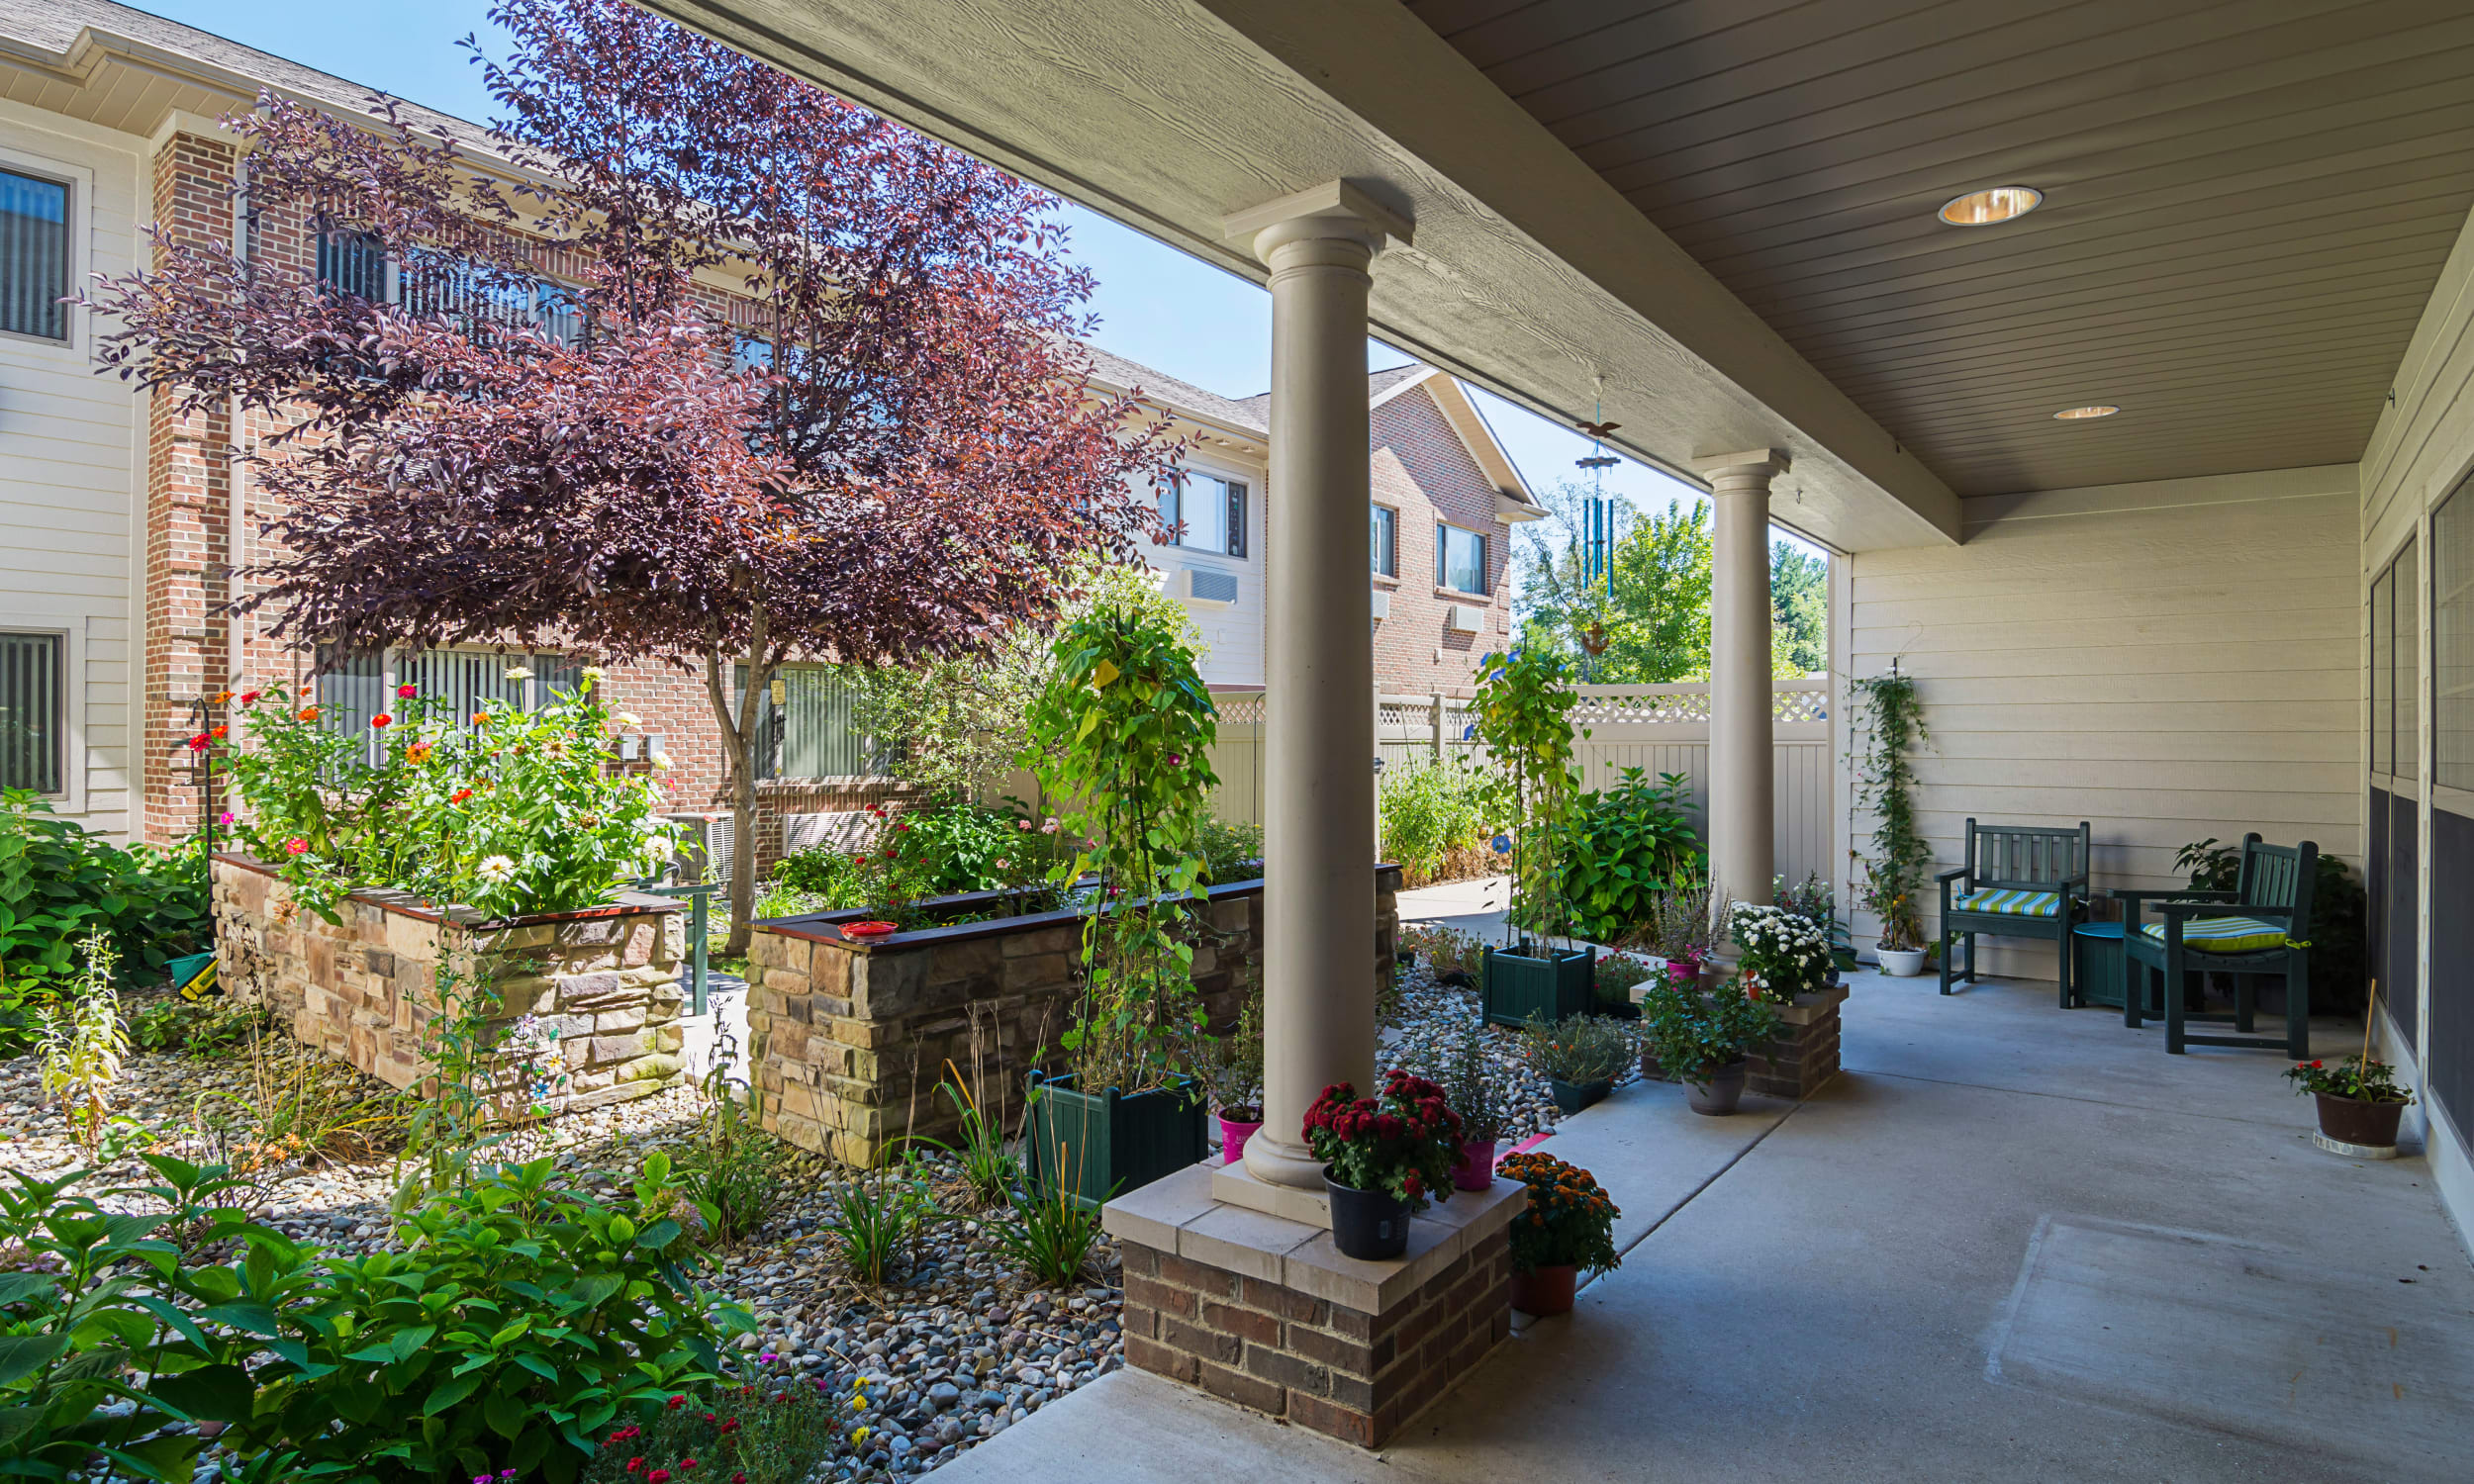 Valparaiso senior living has amazing care options